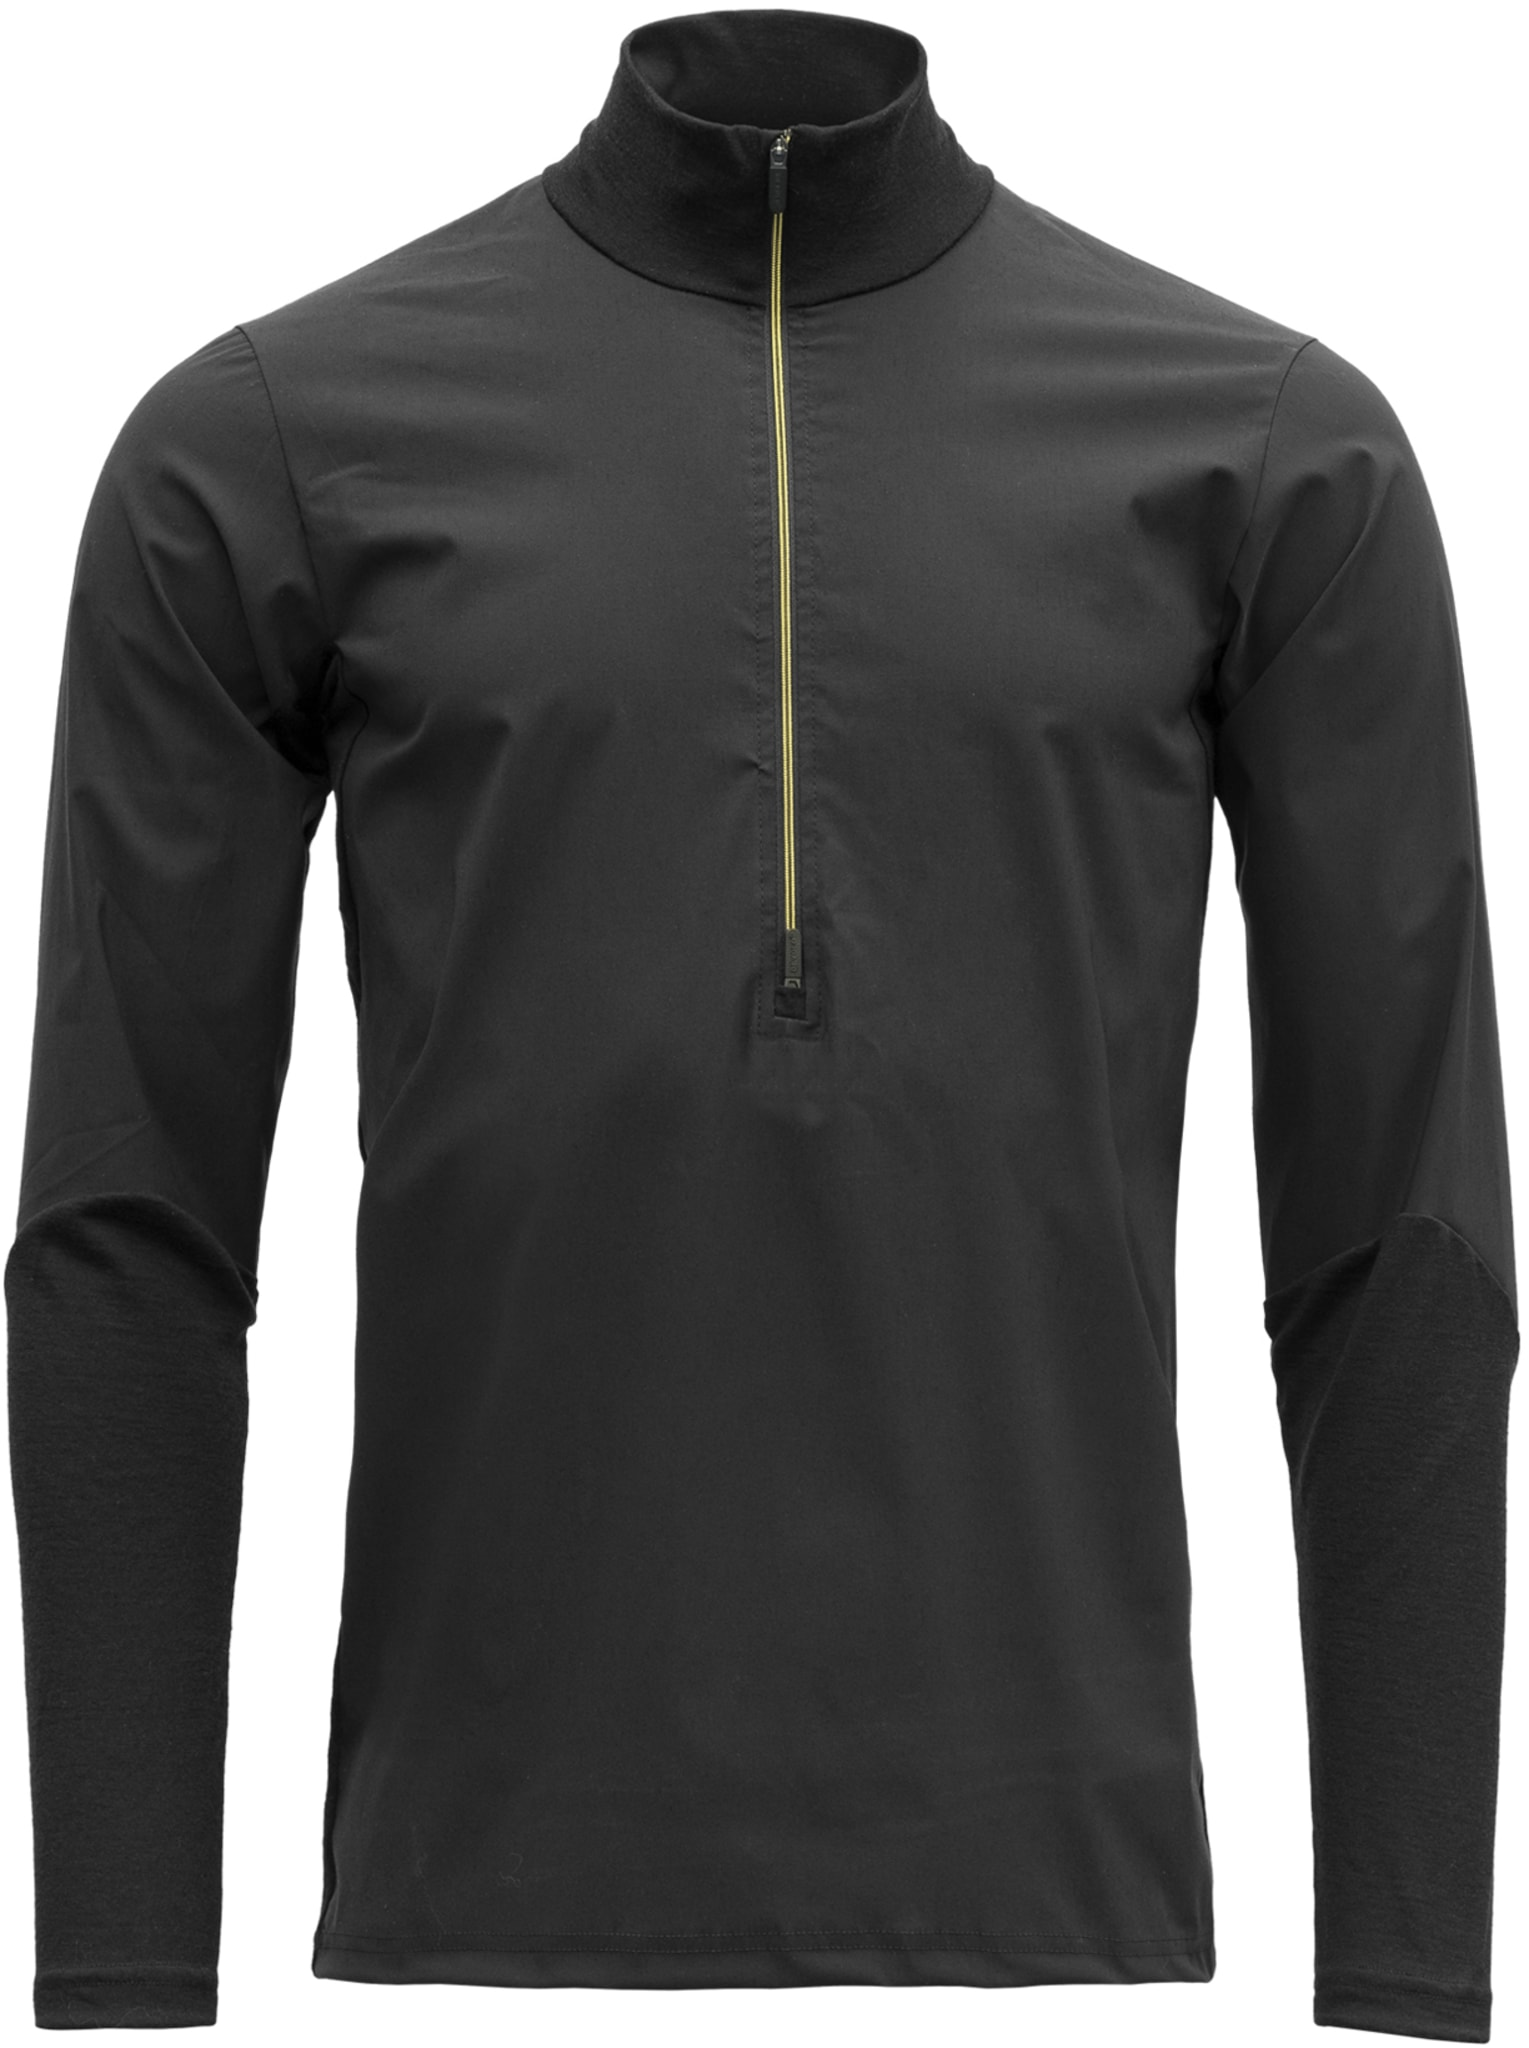 Running Cover Man Zip Neck